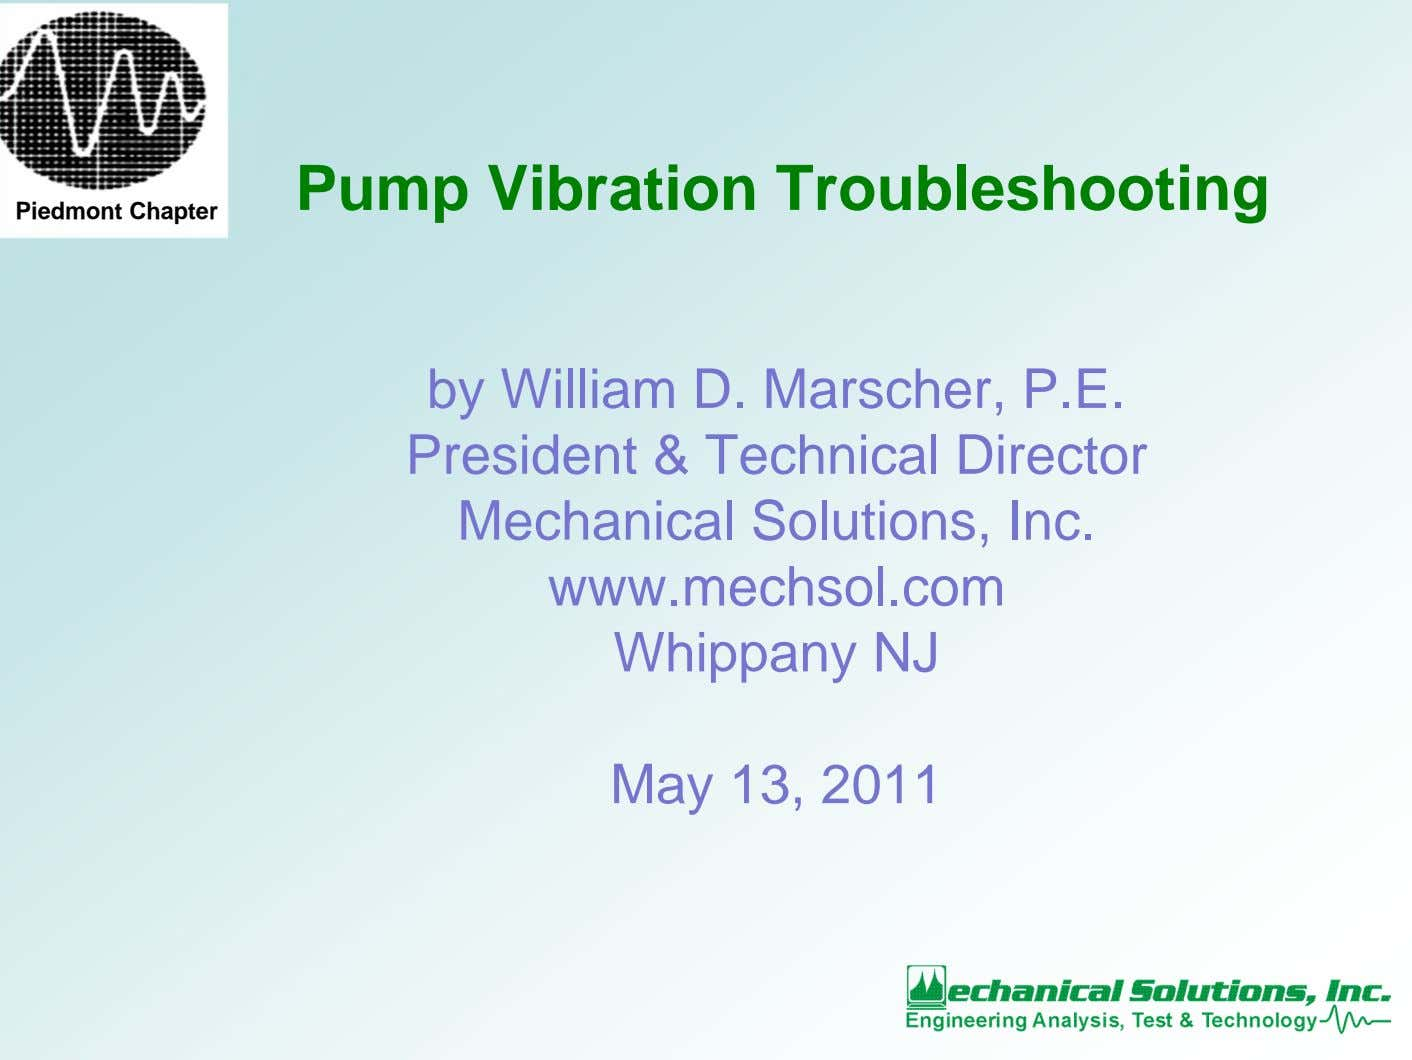 Pump Vibration Troubleshooting Piedmont Chapter by William D. Marscher, P.E. President & Technical Director